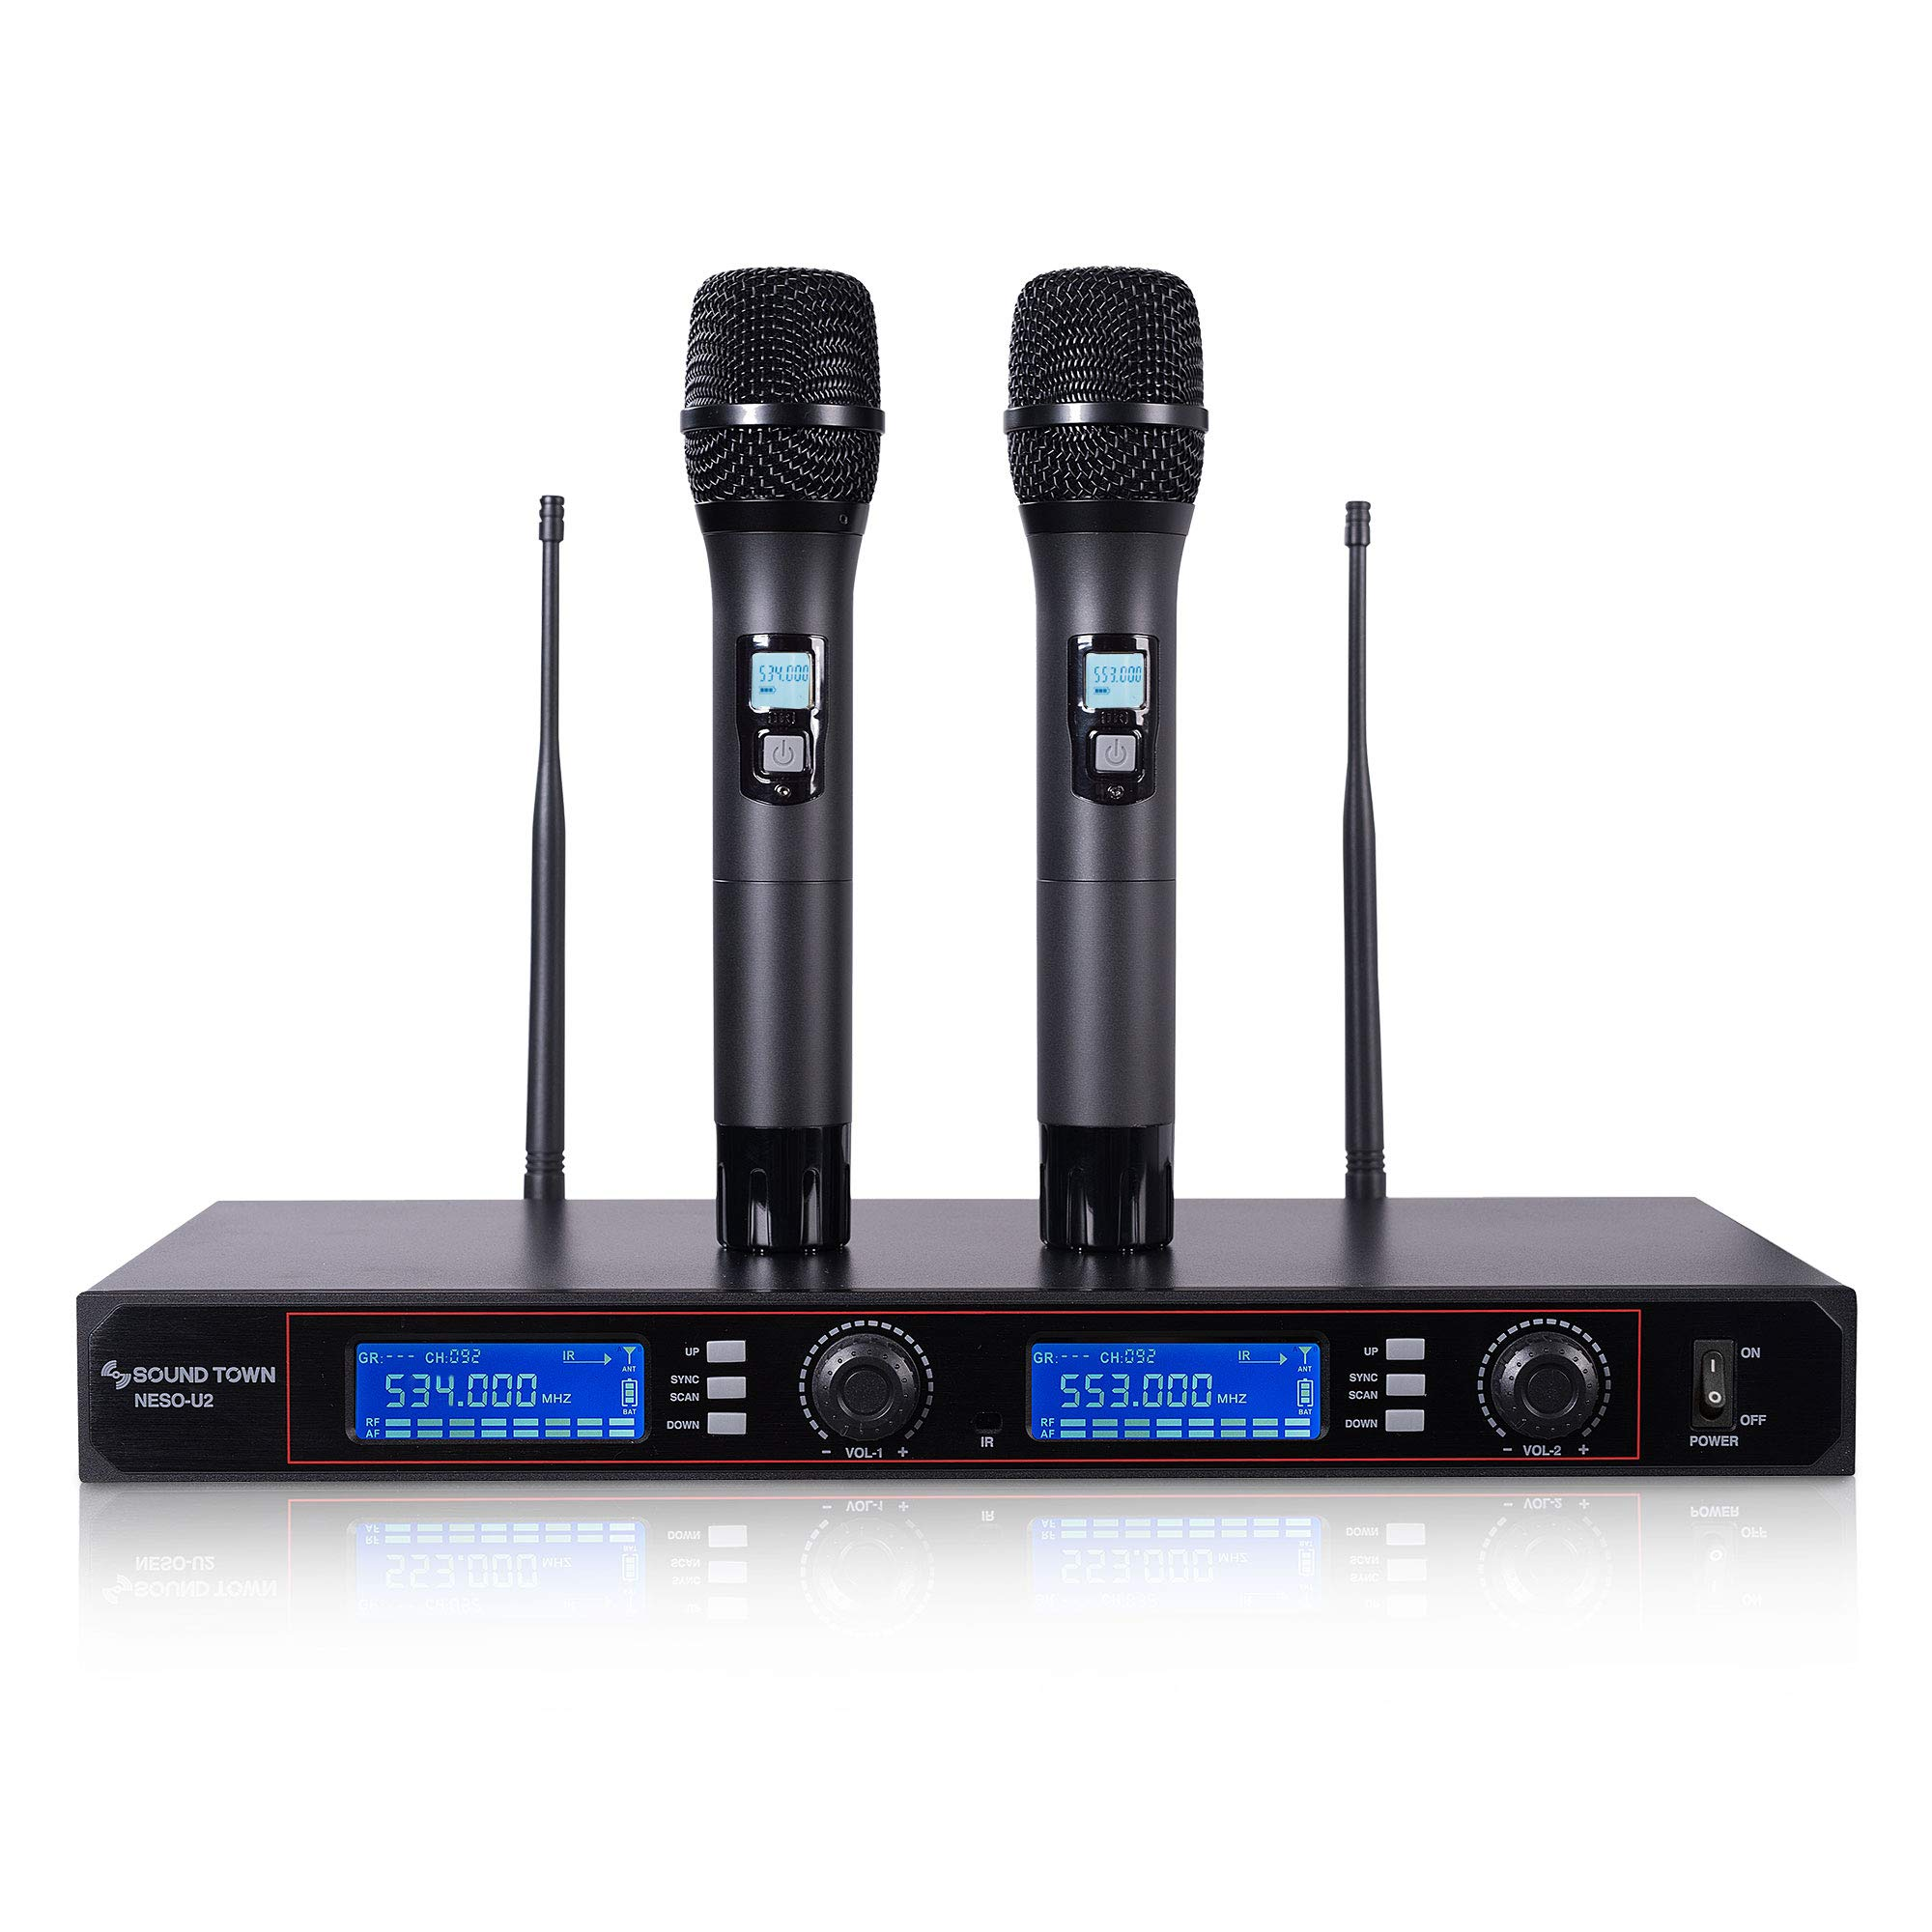 Sound Town 200 Channel Professional Microphone